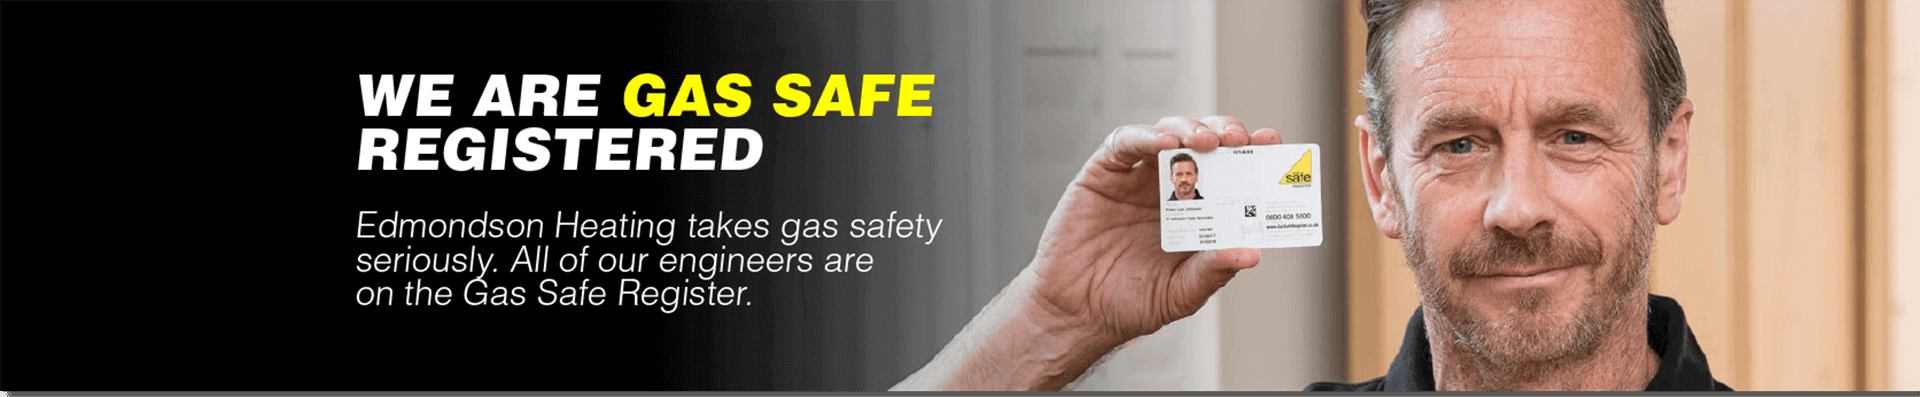 Gas Safe Edmondson Heating Upminster